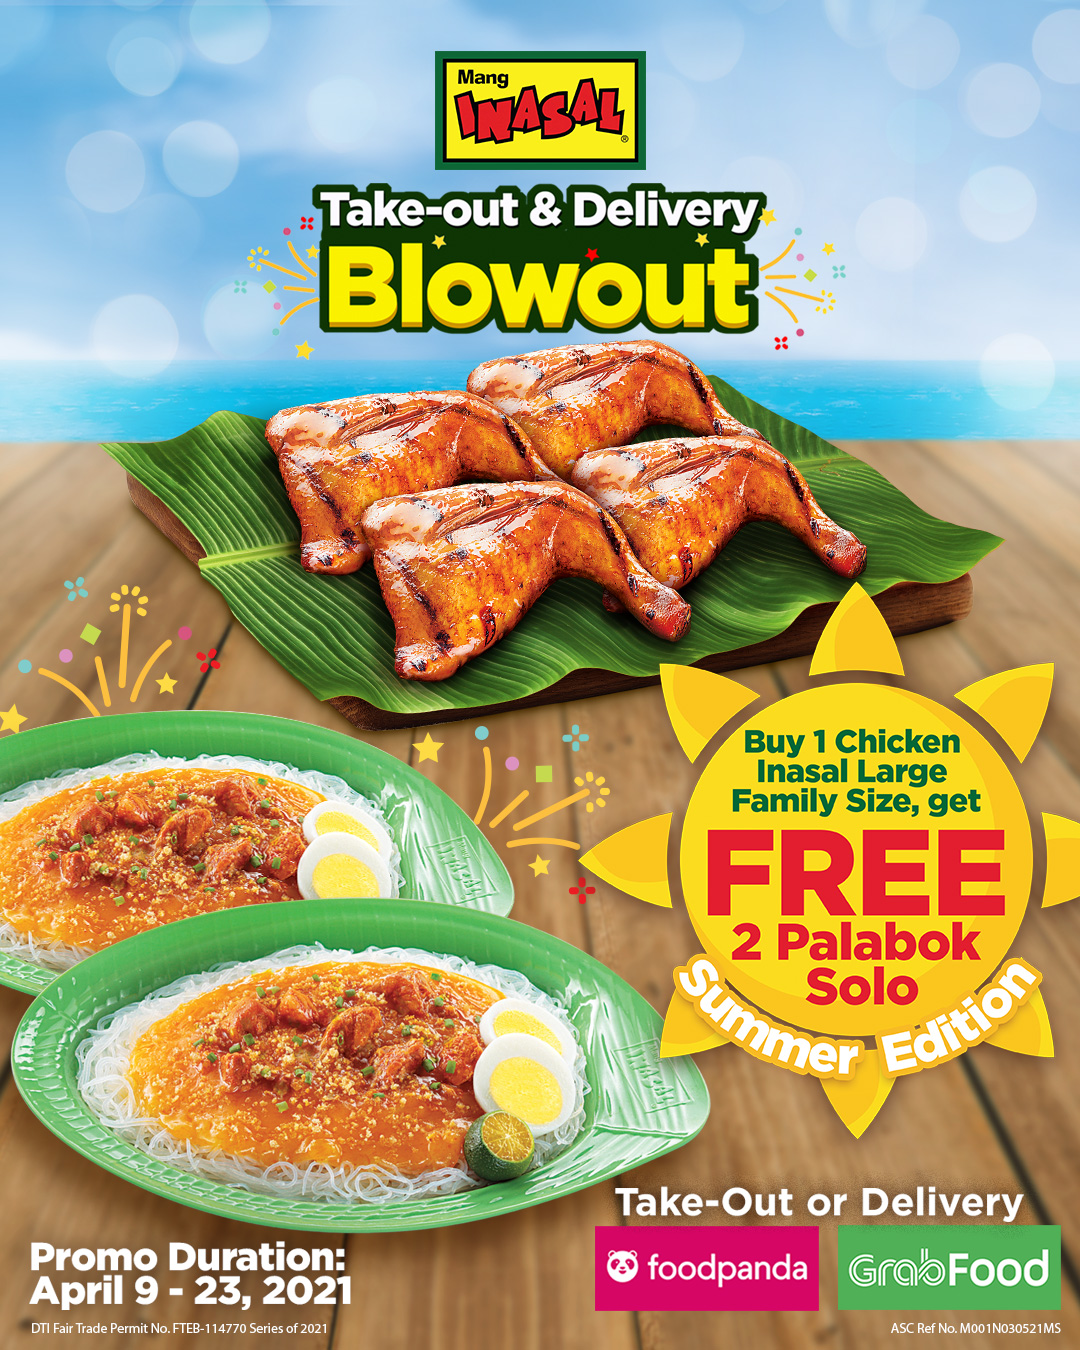 Mang Inasal Chicken and Palabok fans get another round of Blowout treat this summer